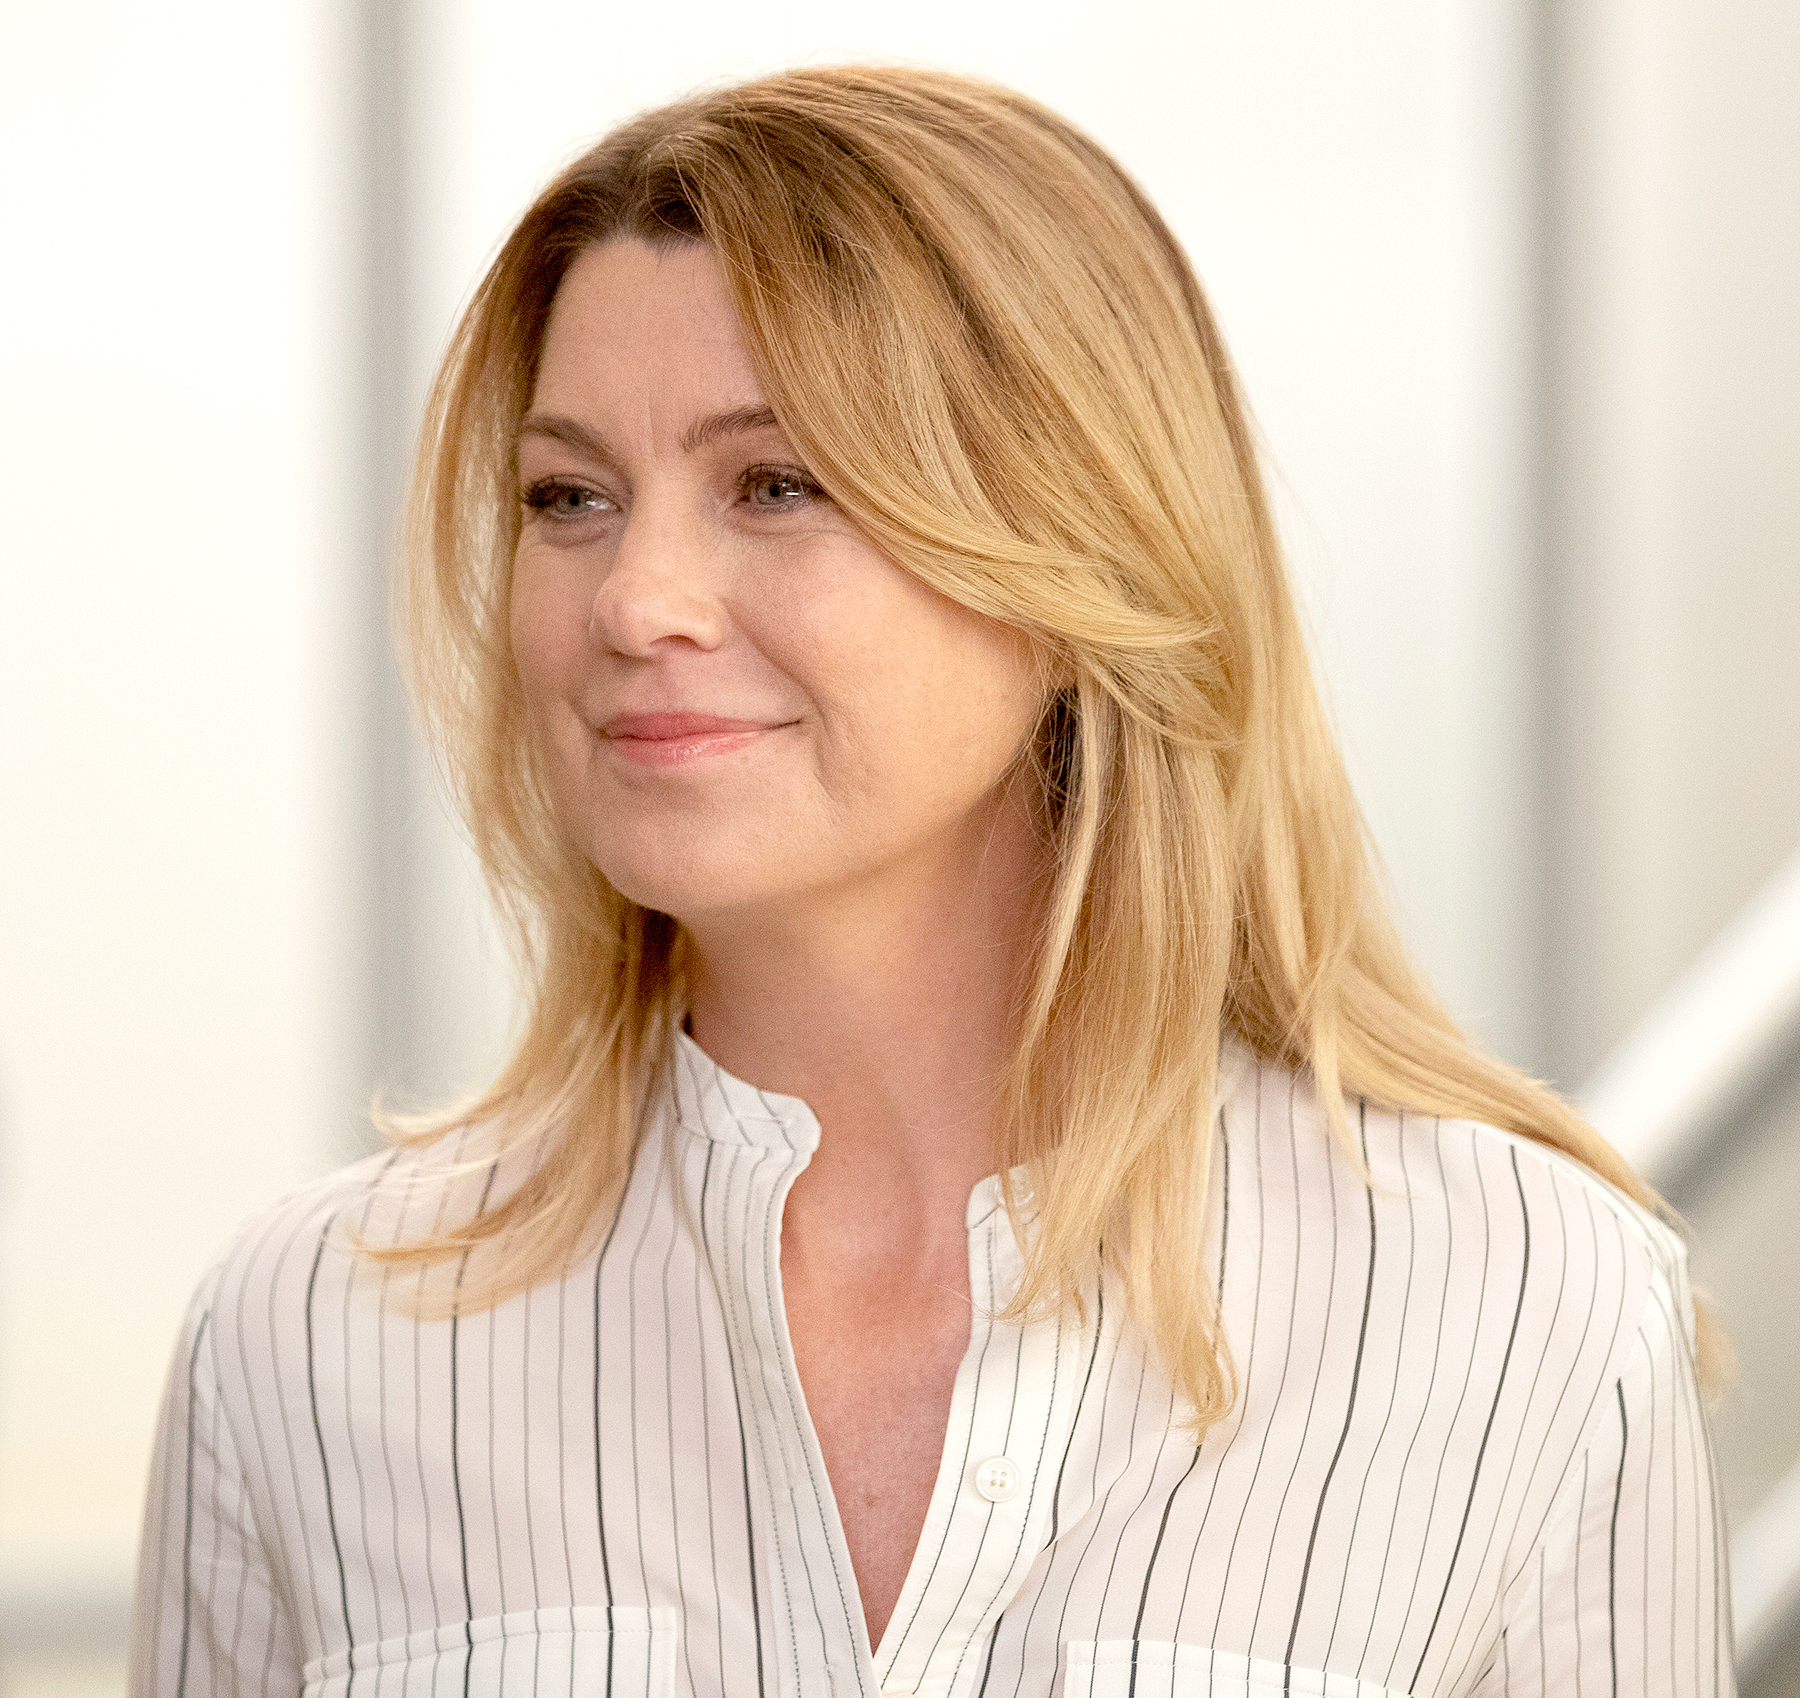 Ellen Pompeo on Grey's Anatomy - Ellen Pompeo on Grey's Anatomy